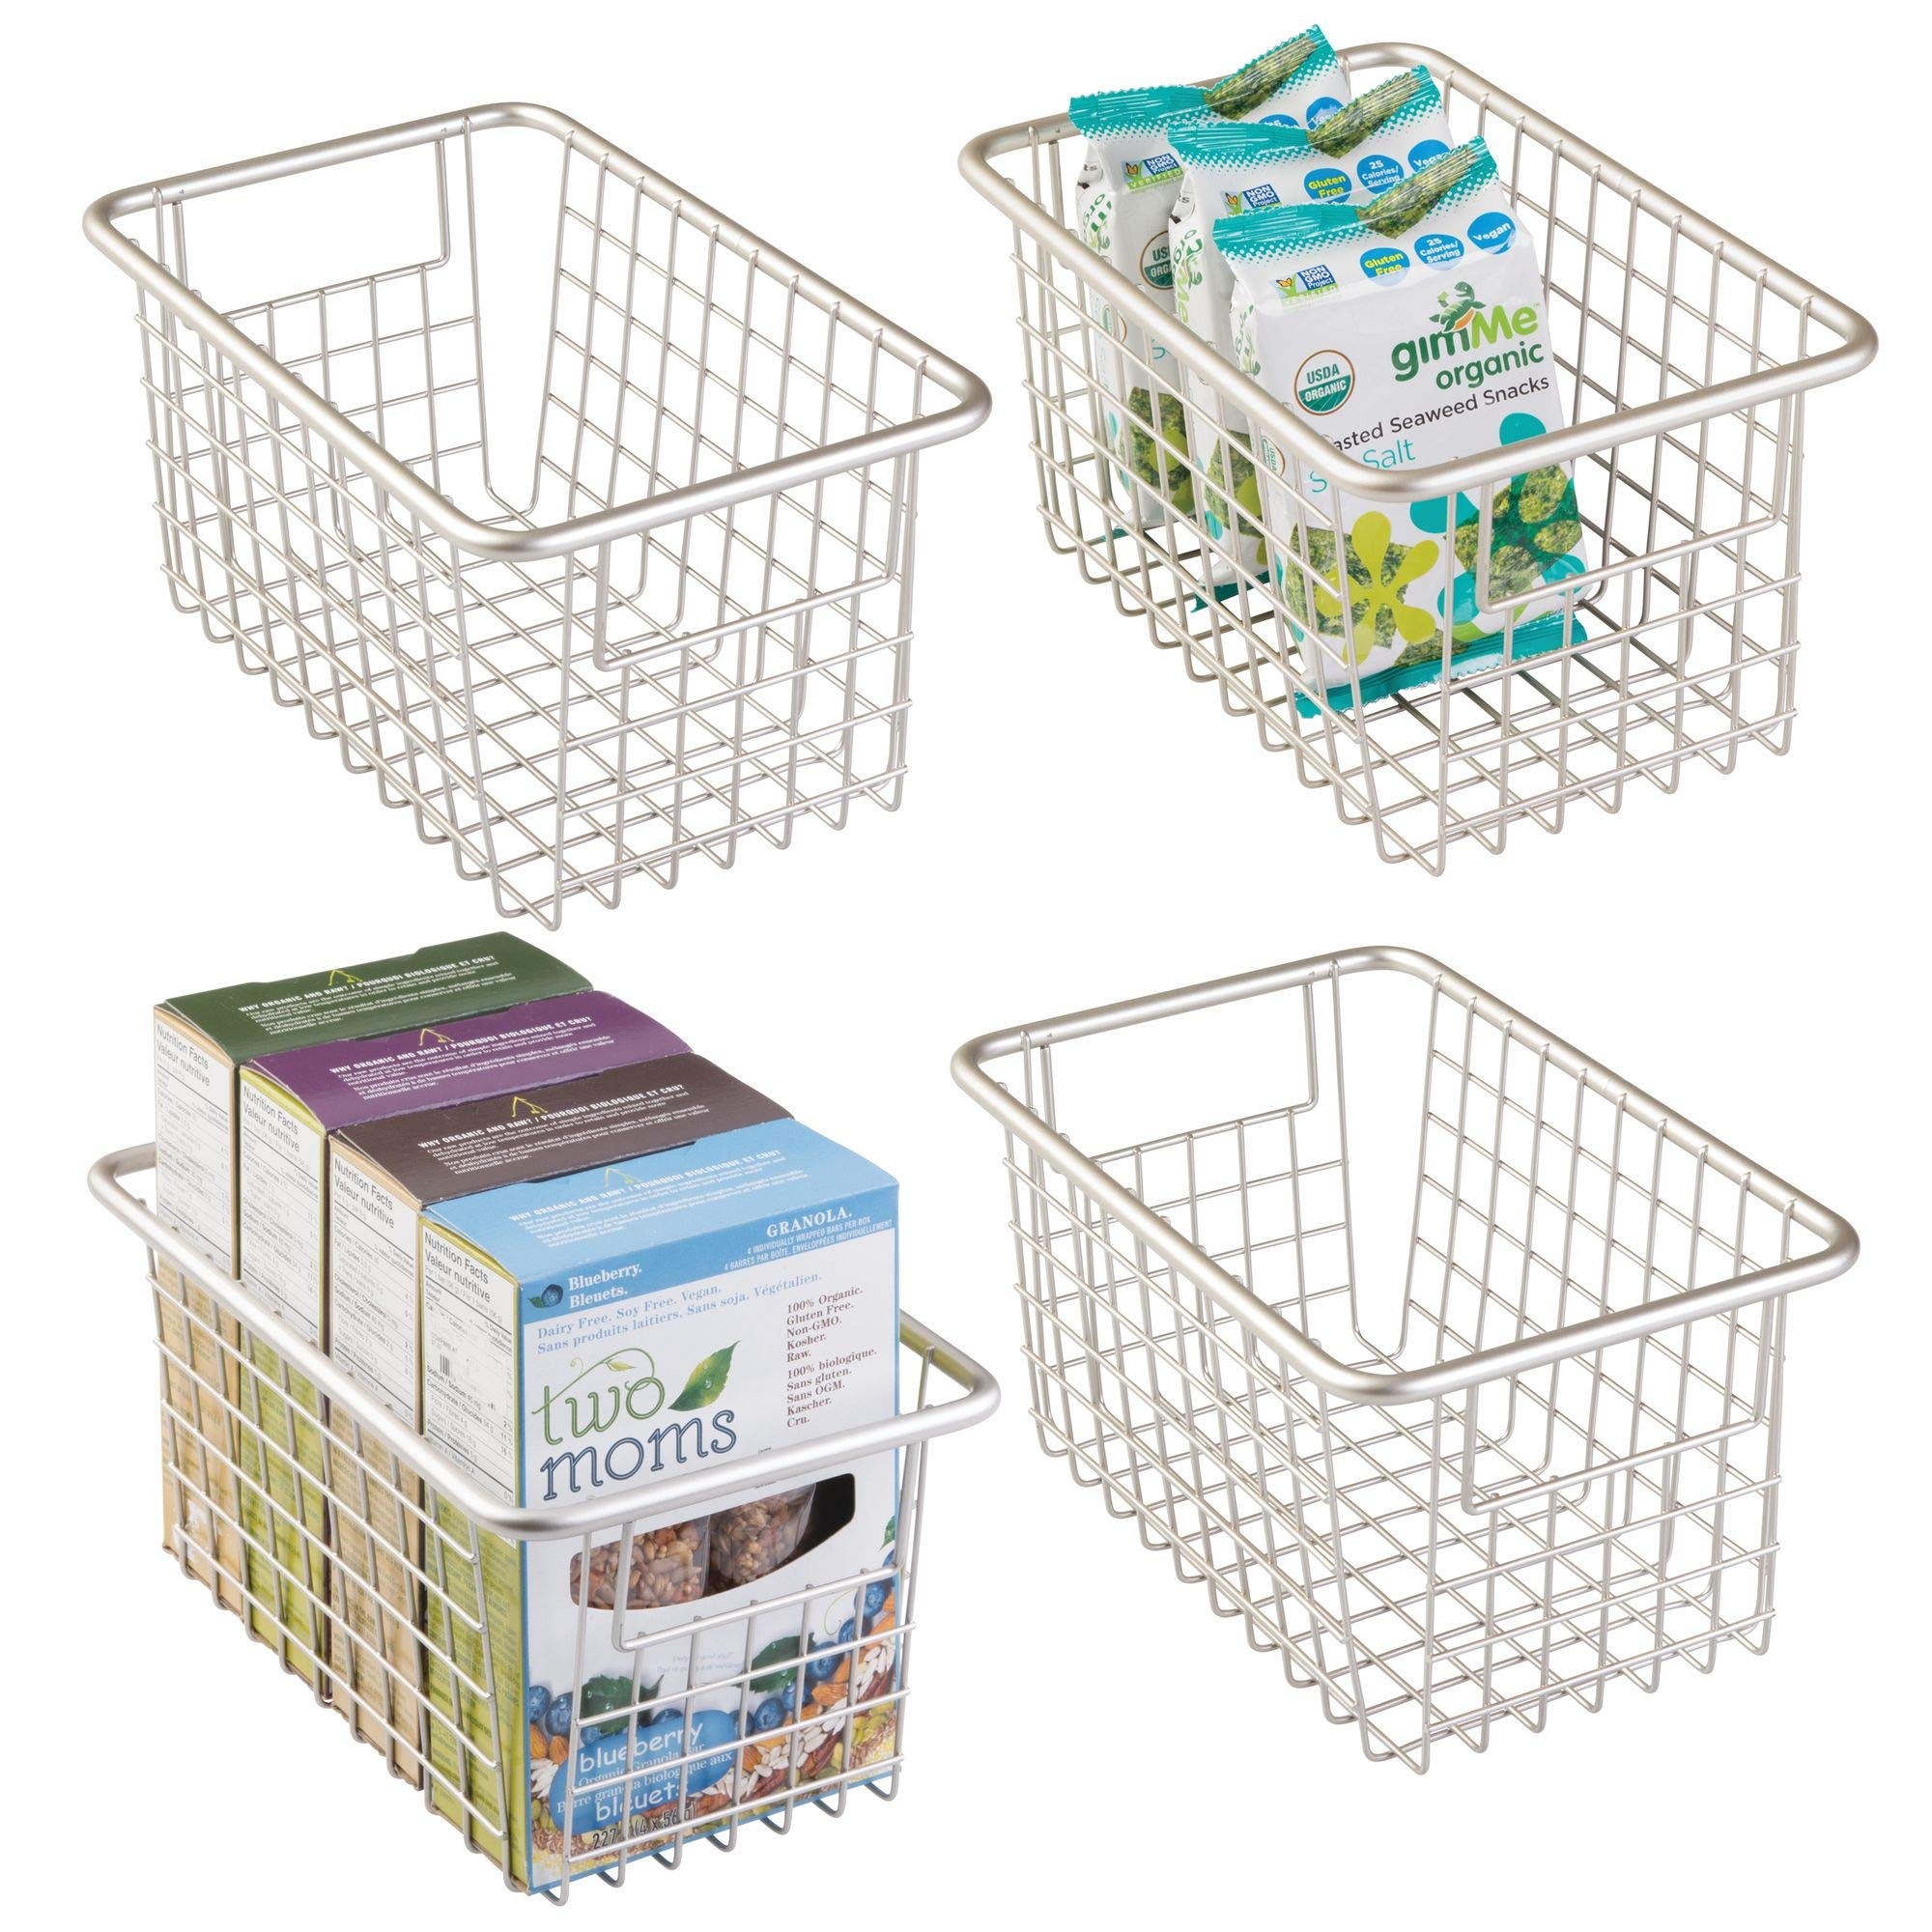 mDesign Household Wire Storage Organizer Bin Basket with Built-In Handles for Kitchen Cabinets, Pantry, Closets, Bedrooms, Bathrooms - Deep, Pack of 4, Satin